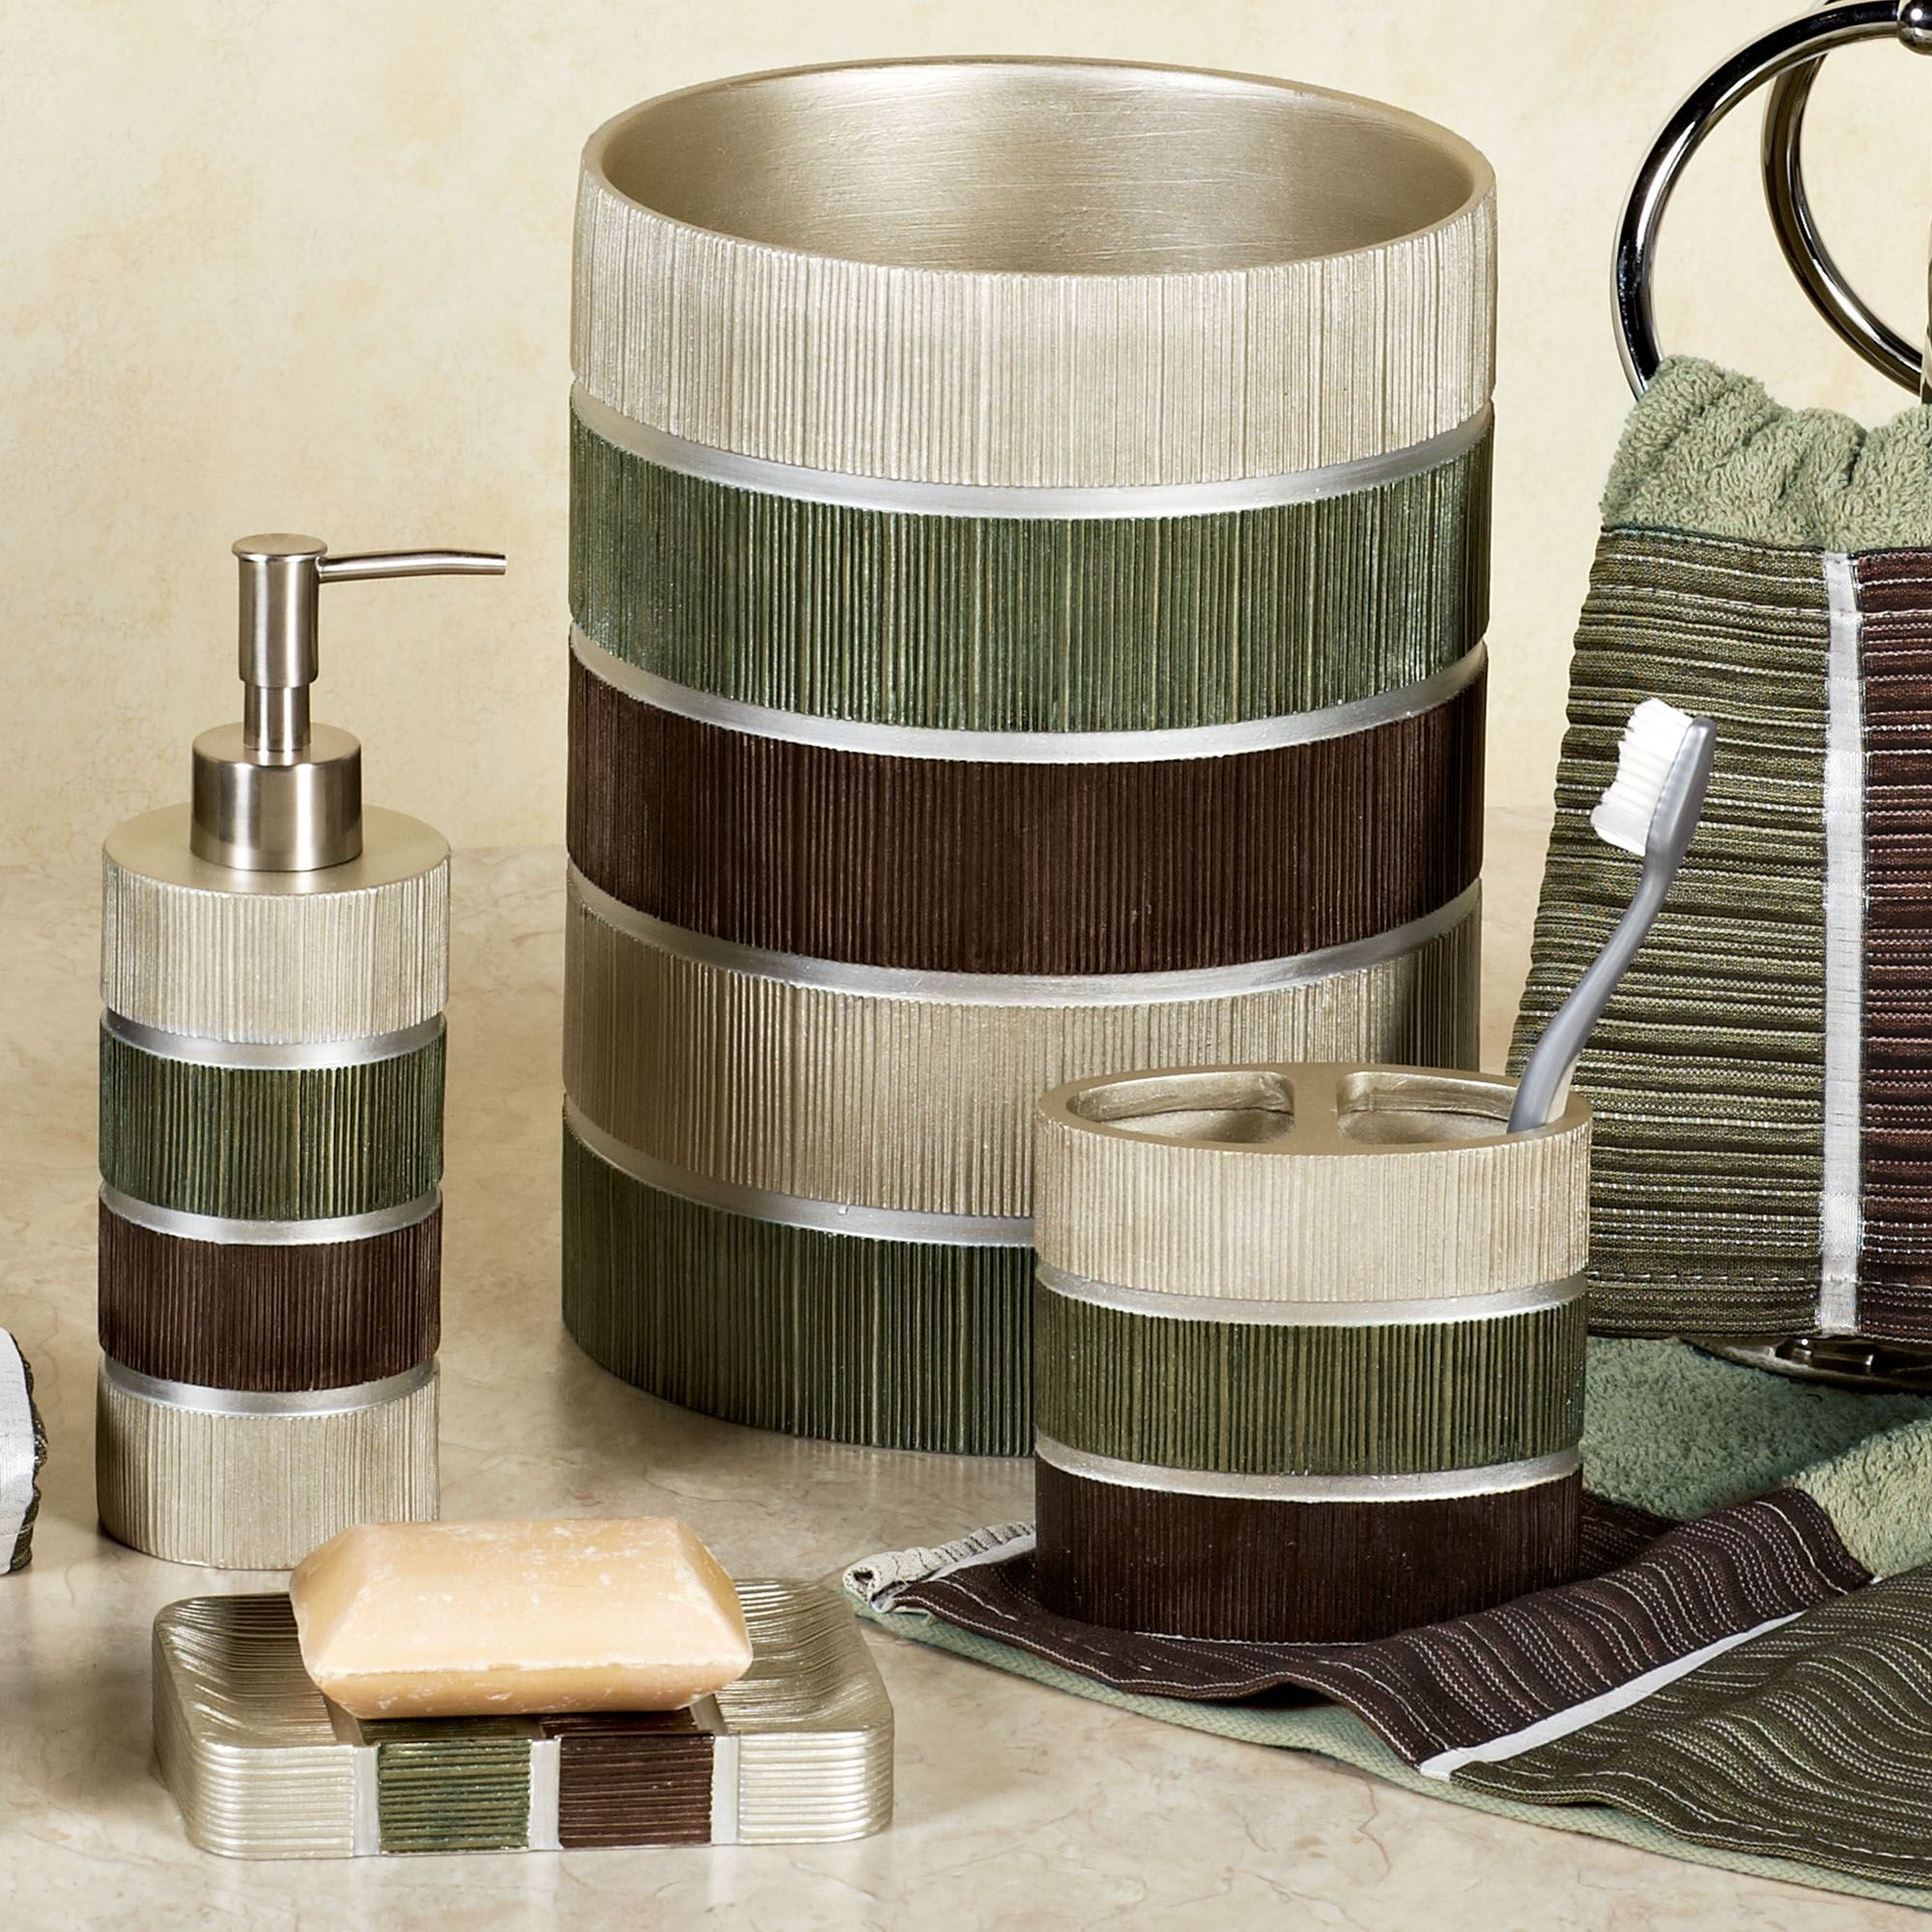 Modern line sage striped bath accessories for Bathroom and accessories